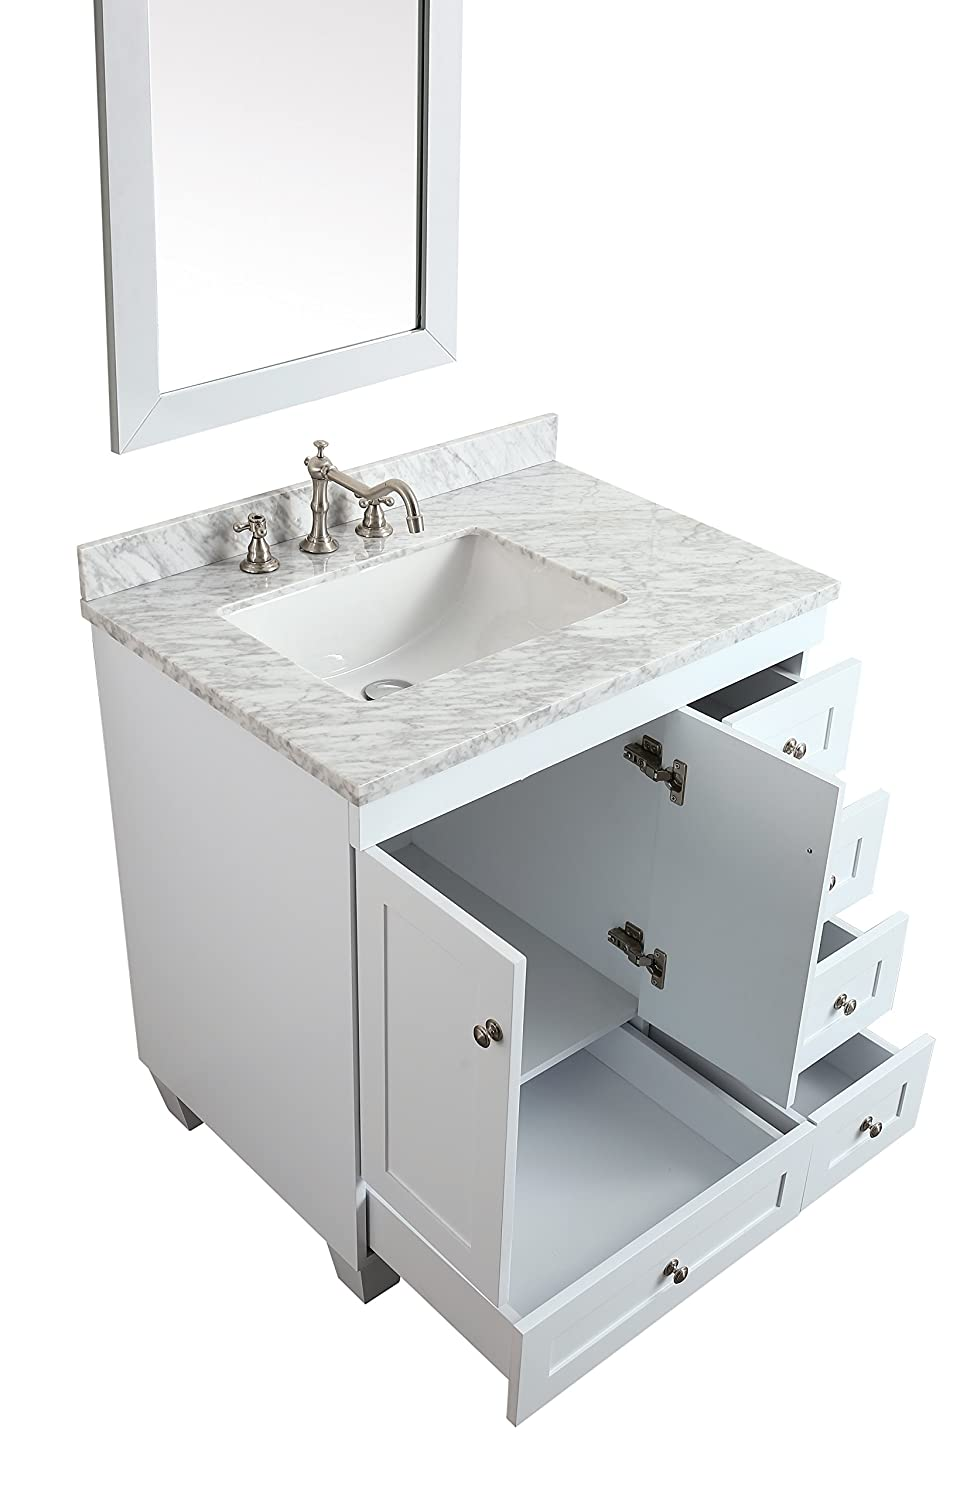 1000 ideas about 30 Inch Vanity on Pinterest  30 Inch Bathroom Vanity Bathroom Vanities and